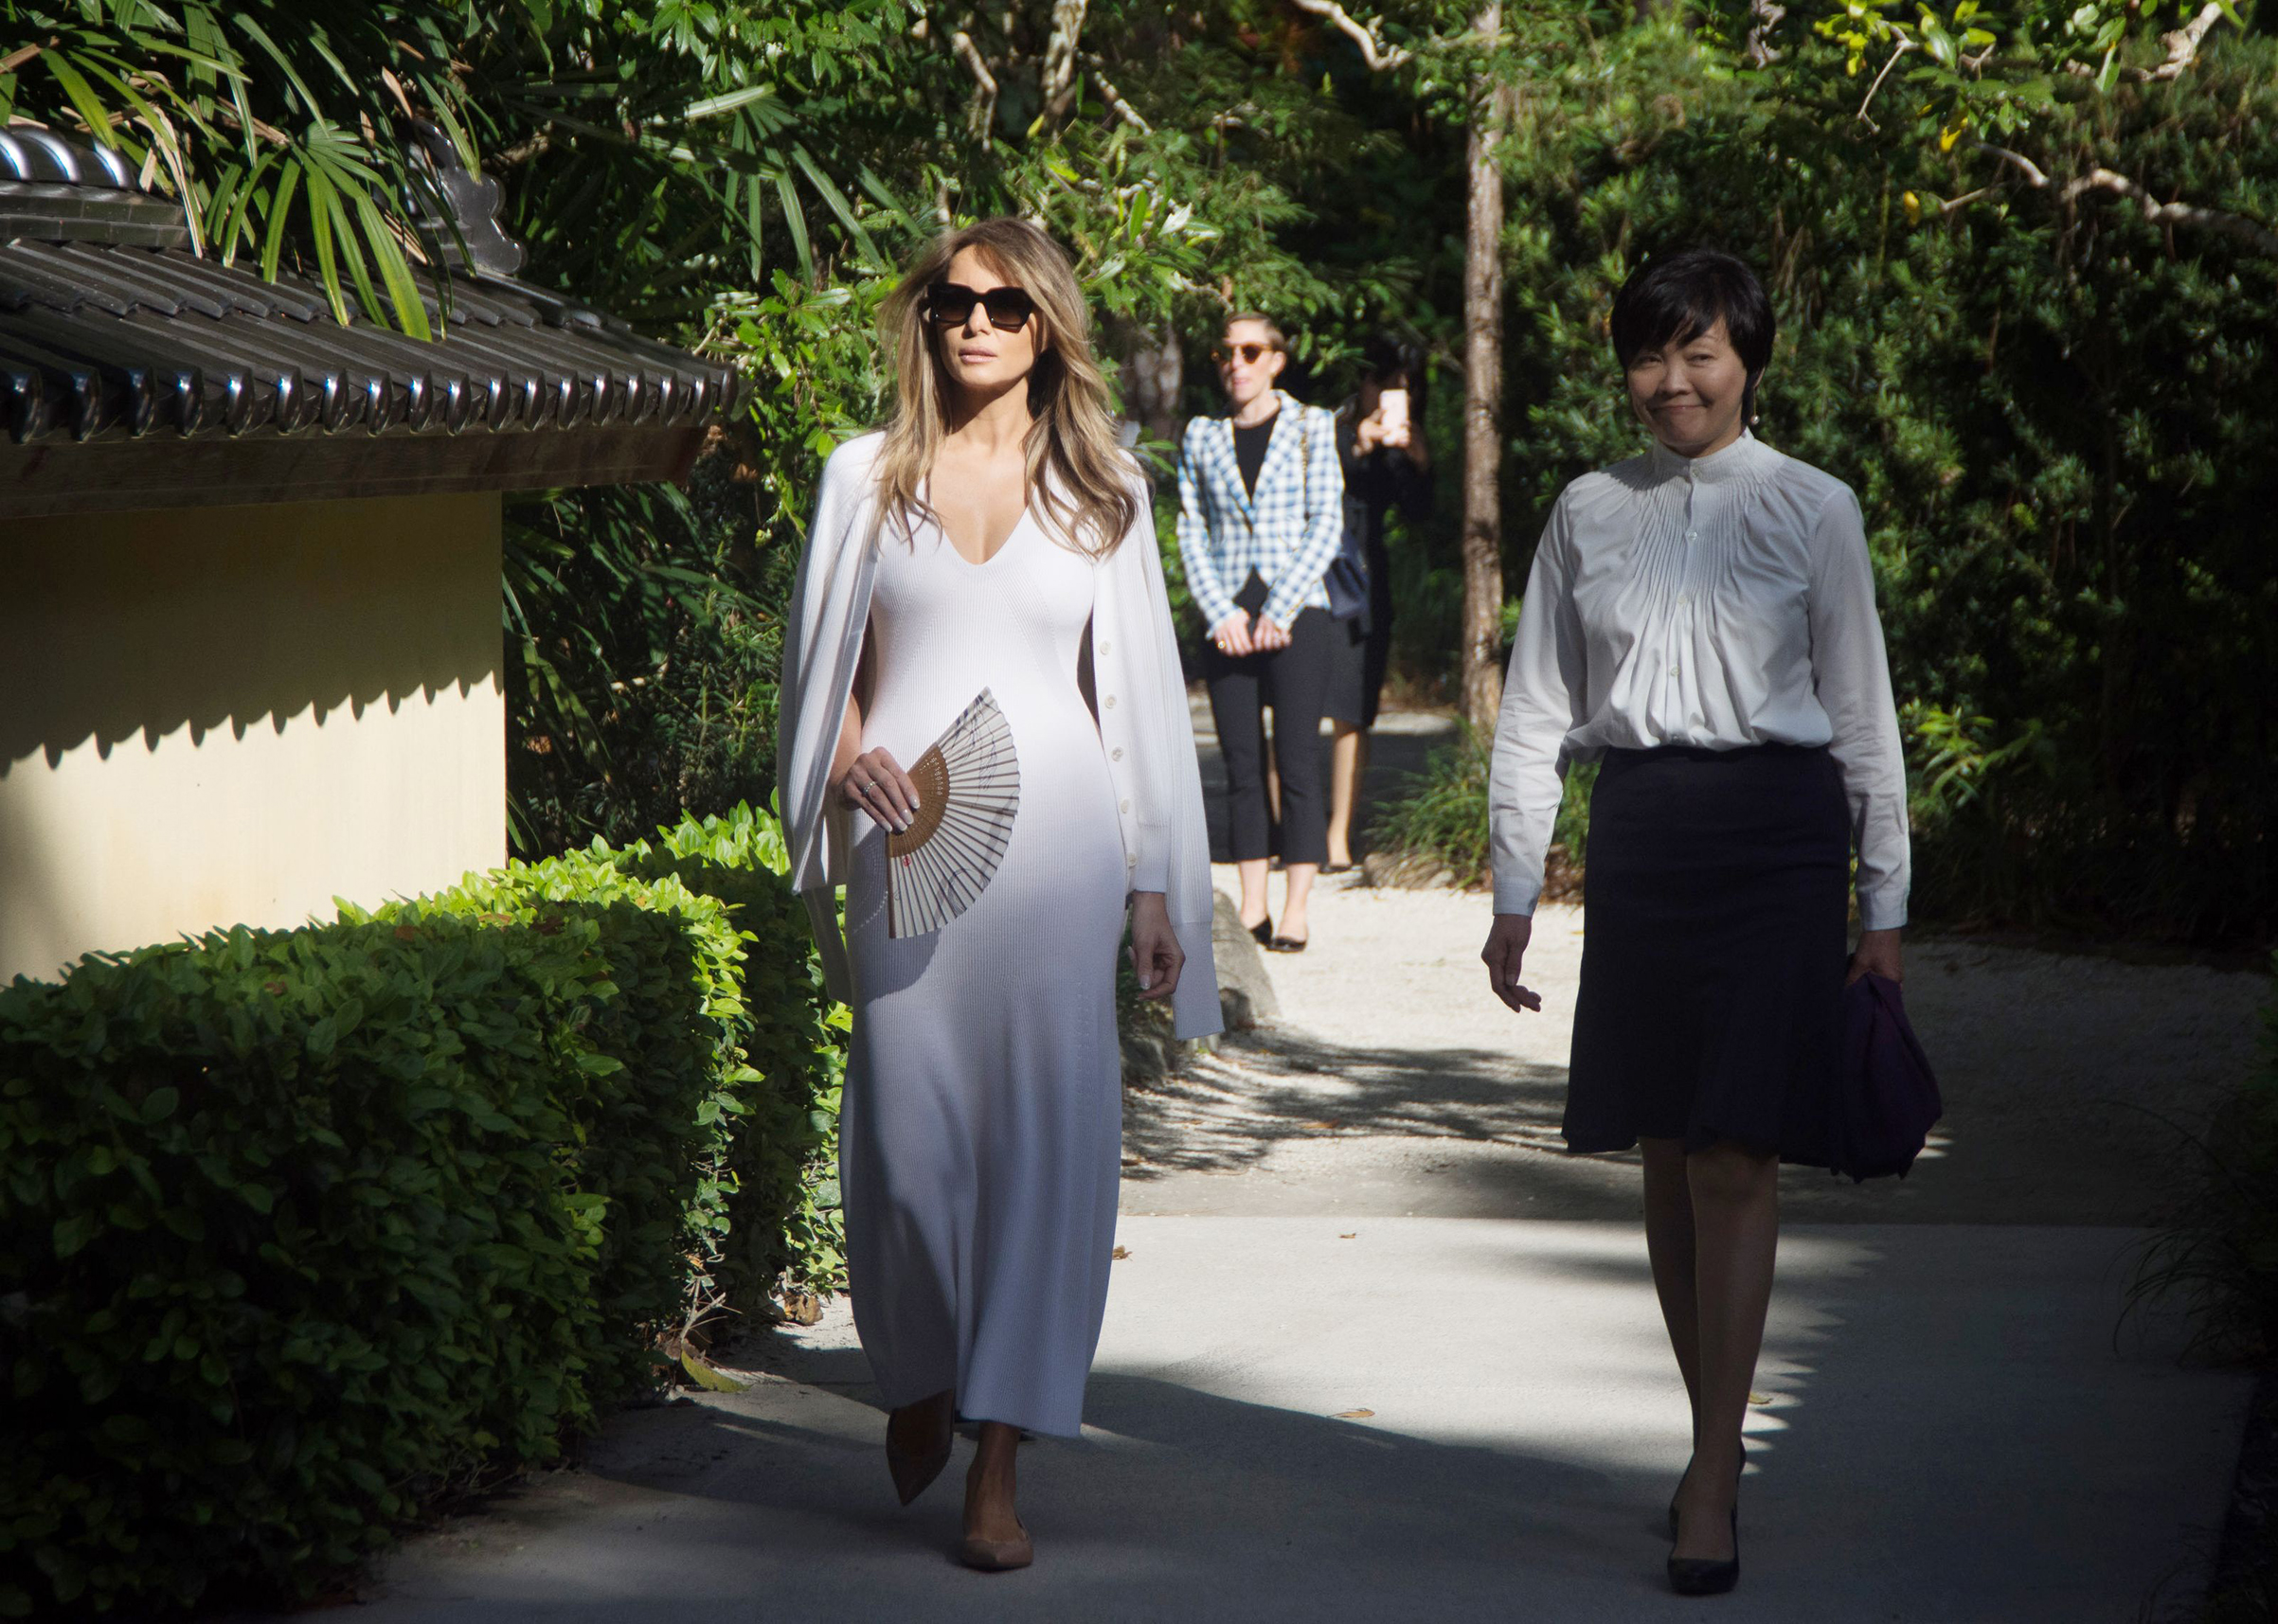 First Lady Melania Trump wearing a sleeveless white cashmere knitted long dress  by Calvin Klein, and Akie Abe, wife of Japanese Prime Minister Shinzo Abe, tour Morikami Museum and Japanese Gardens in Delray Beach, Fla., on Feb. 11, 2017.